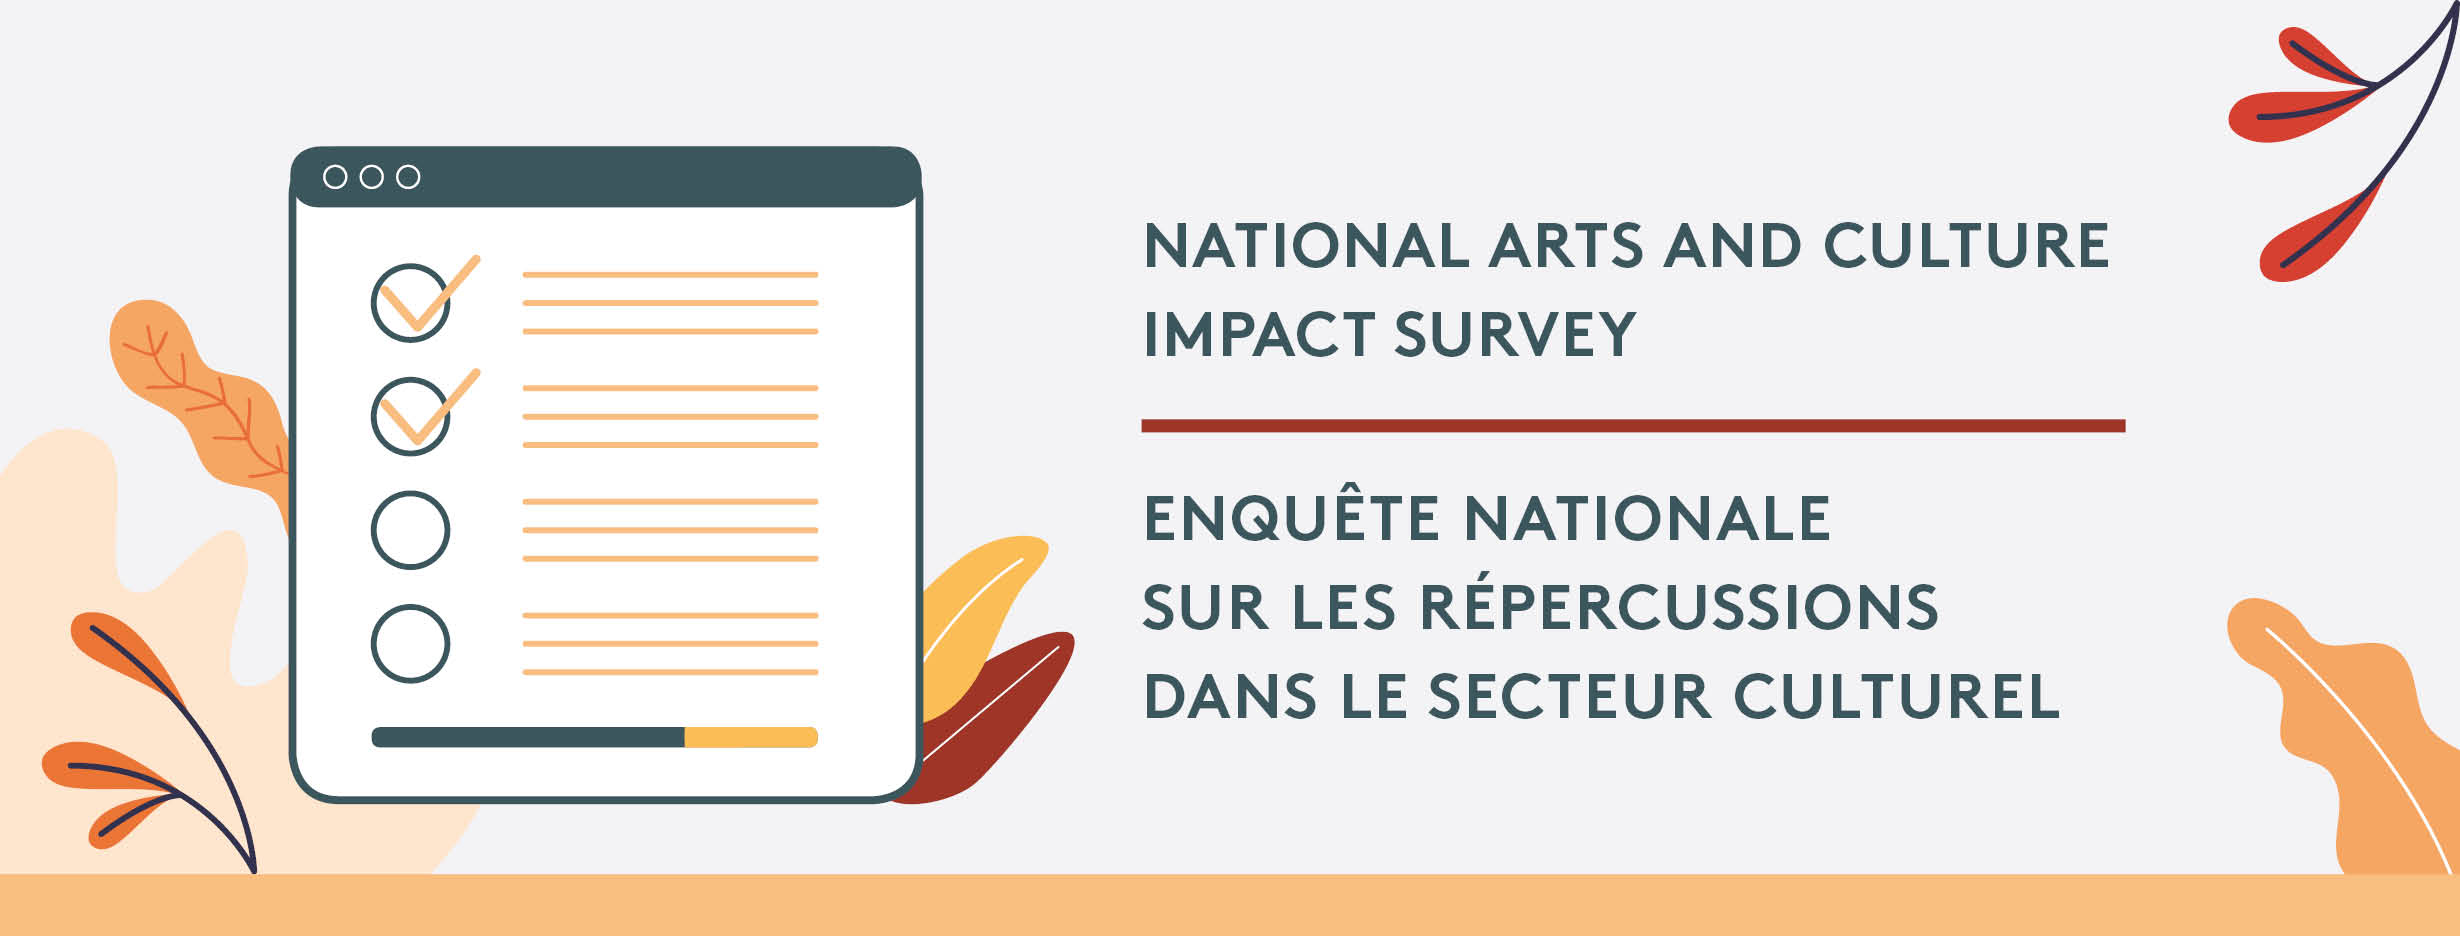 National Arts and Culture Impact Survey